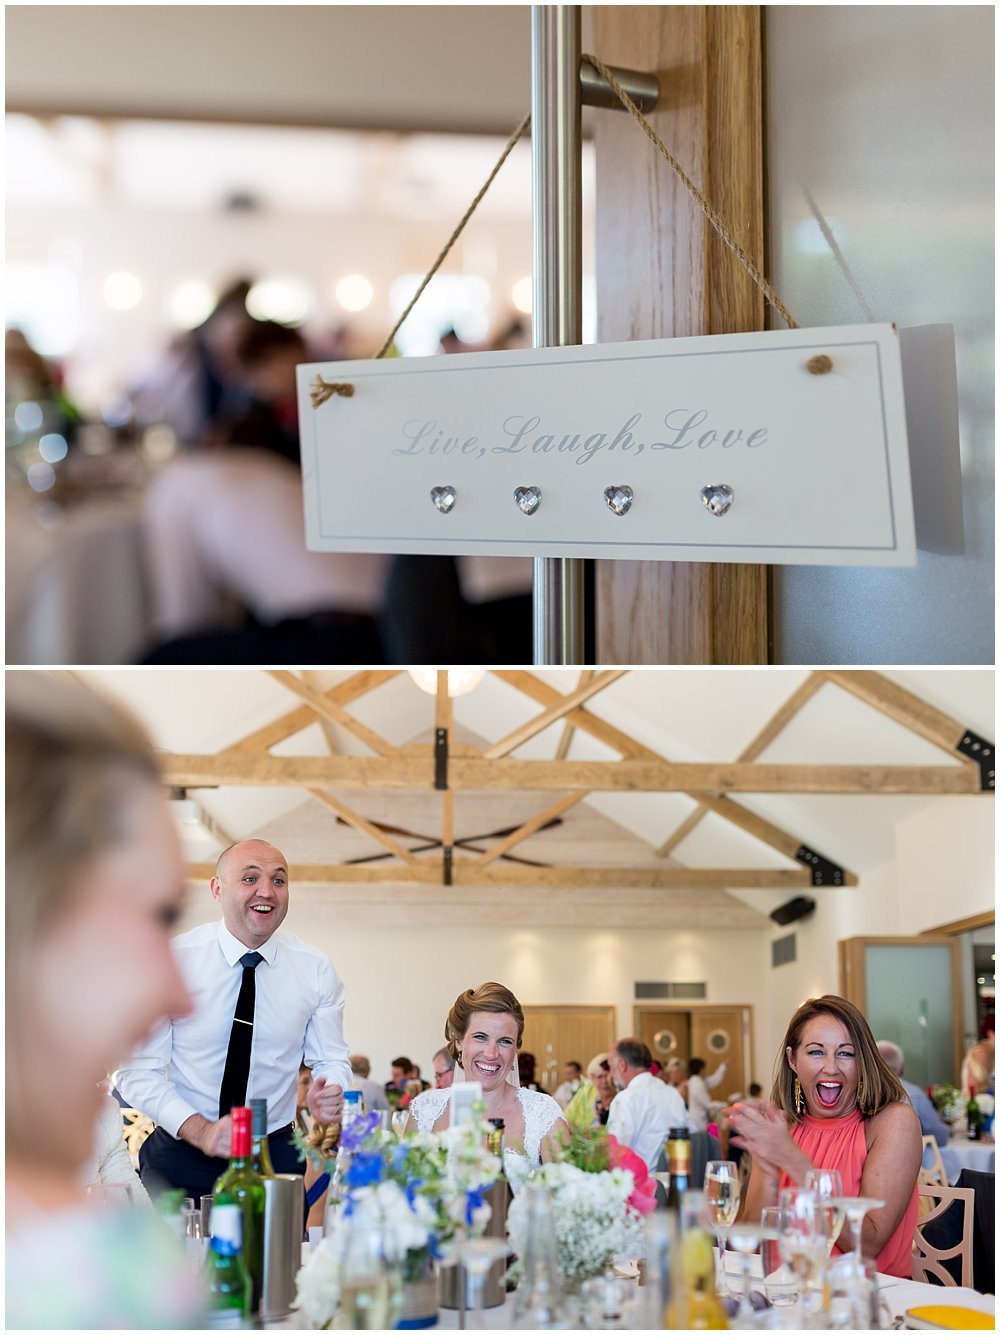 AMY AND DUNCAN NORWICH CATHEDRAL AND THE BOATHOUSE WEDDING - NORWICH AND NORFOLK WEDDING PHOTOGRAPHER 49